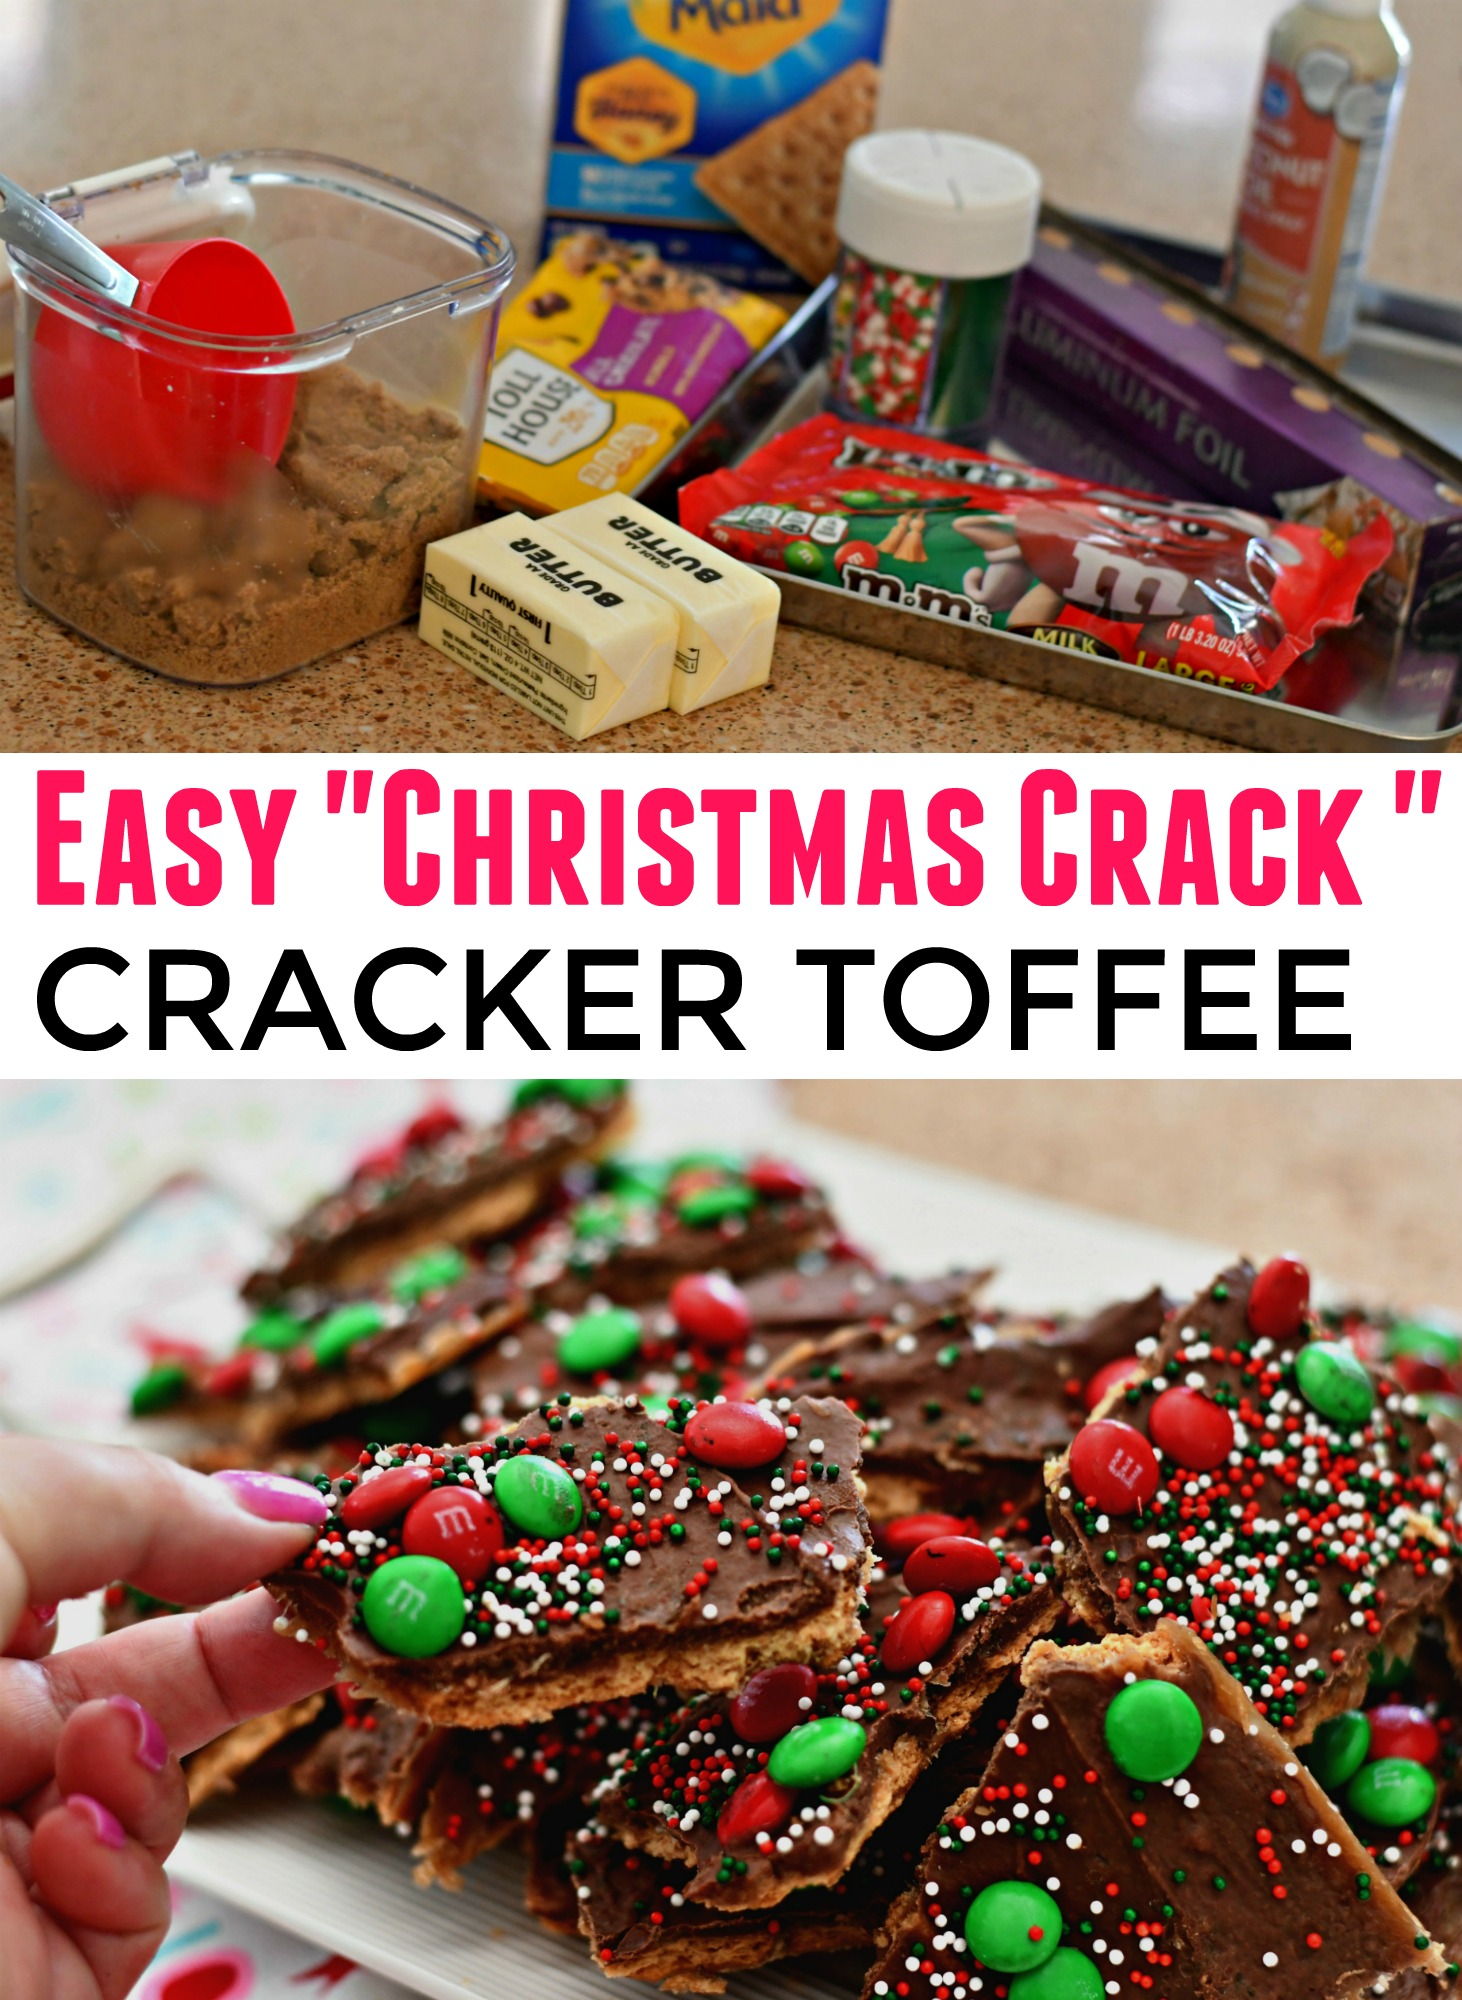 Christmas Crack Candy.Homemade Christmas Crack Toffee